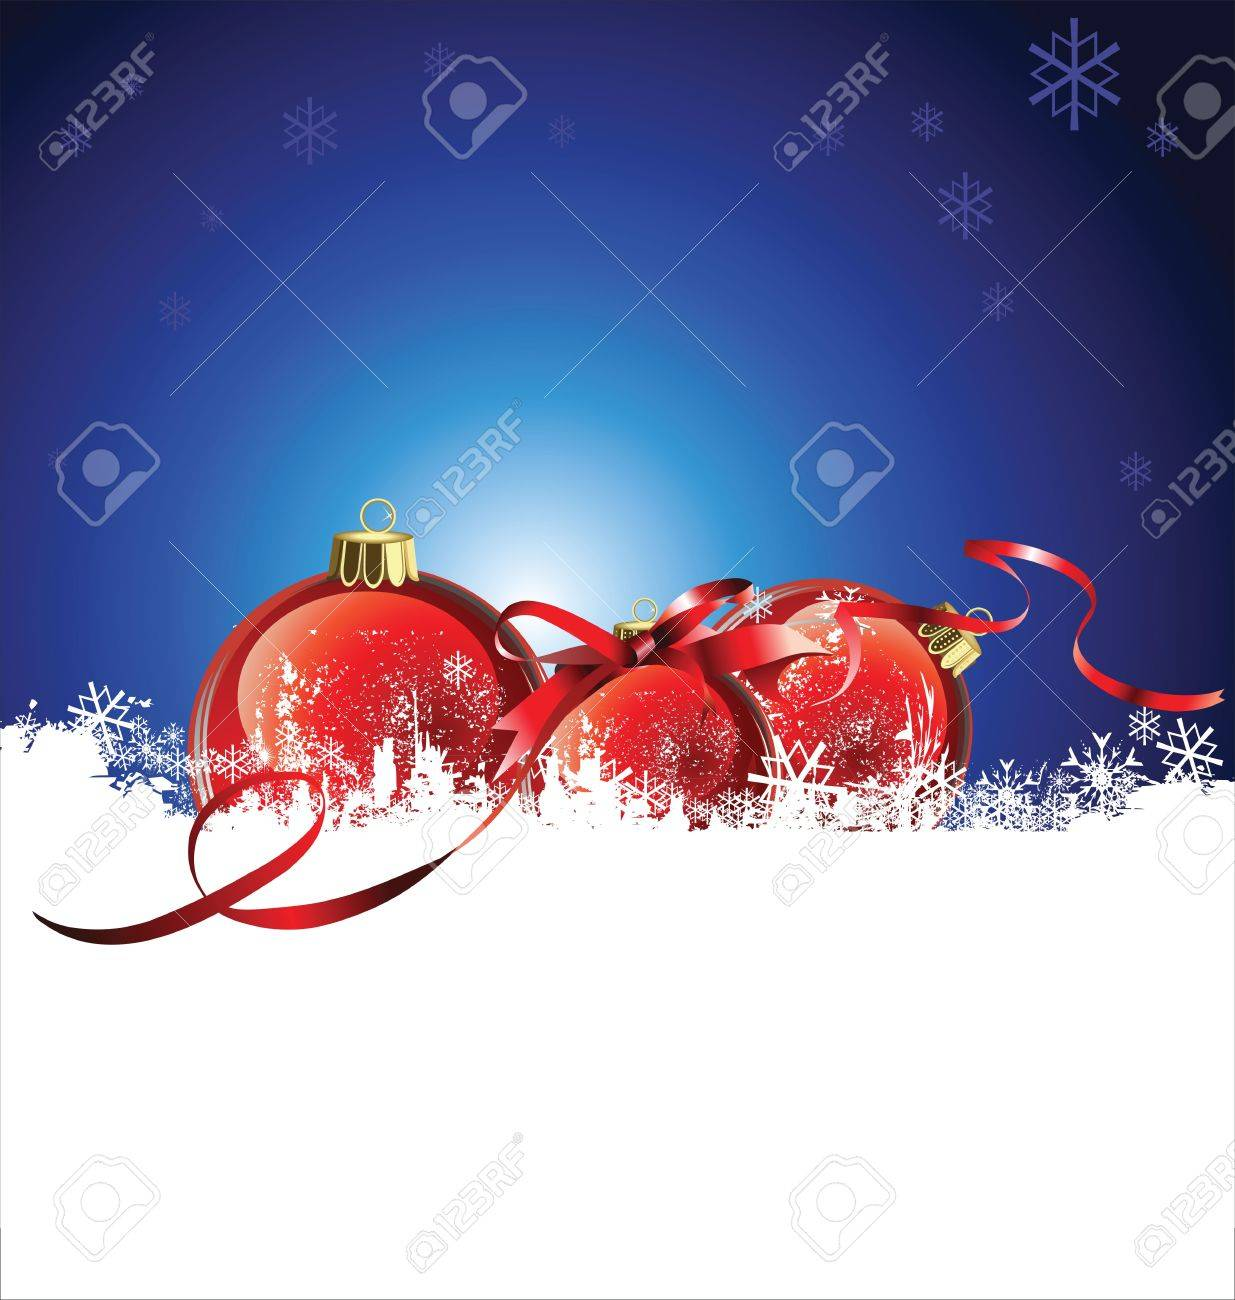 Christmas and new year background - 21003169